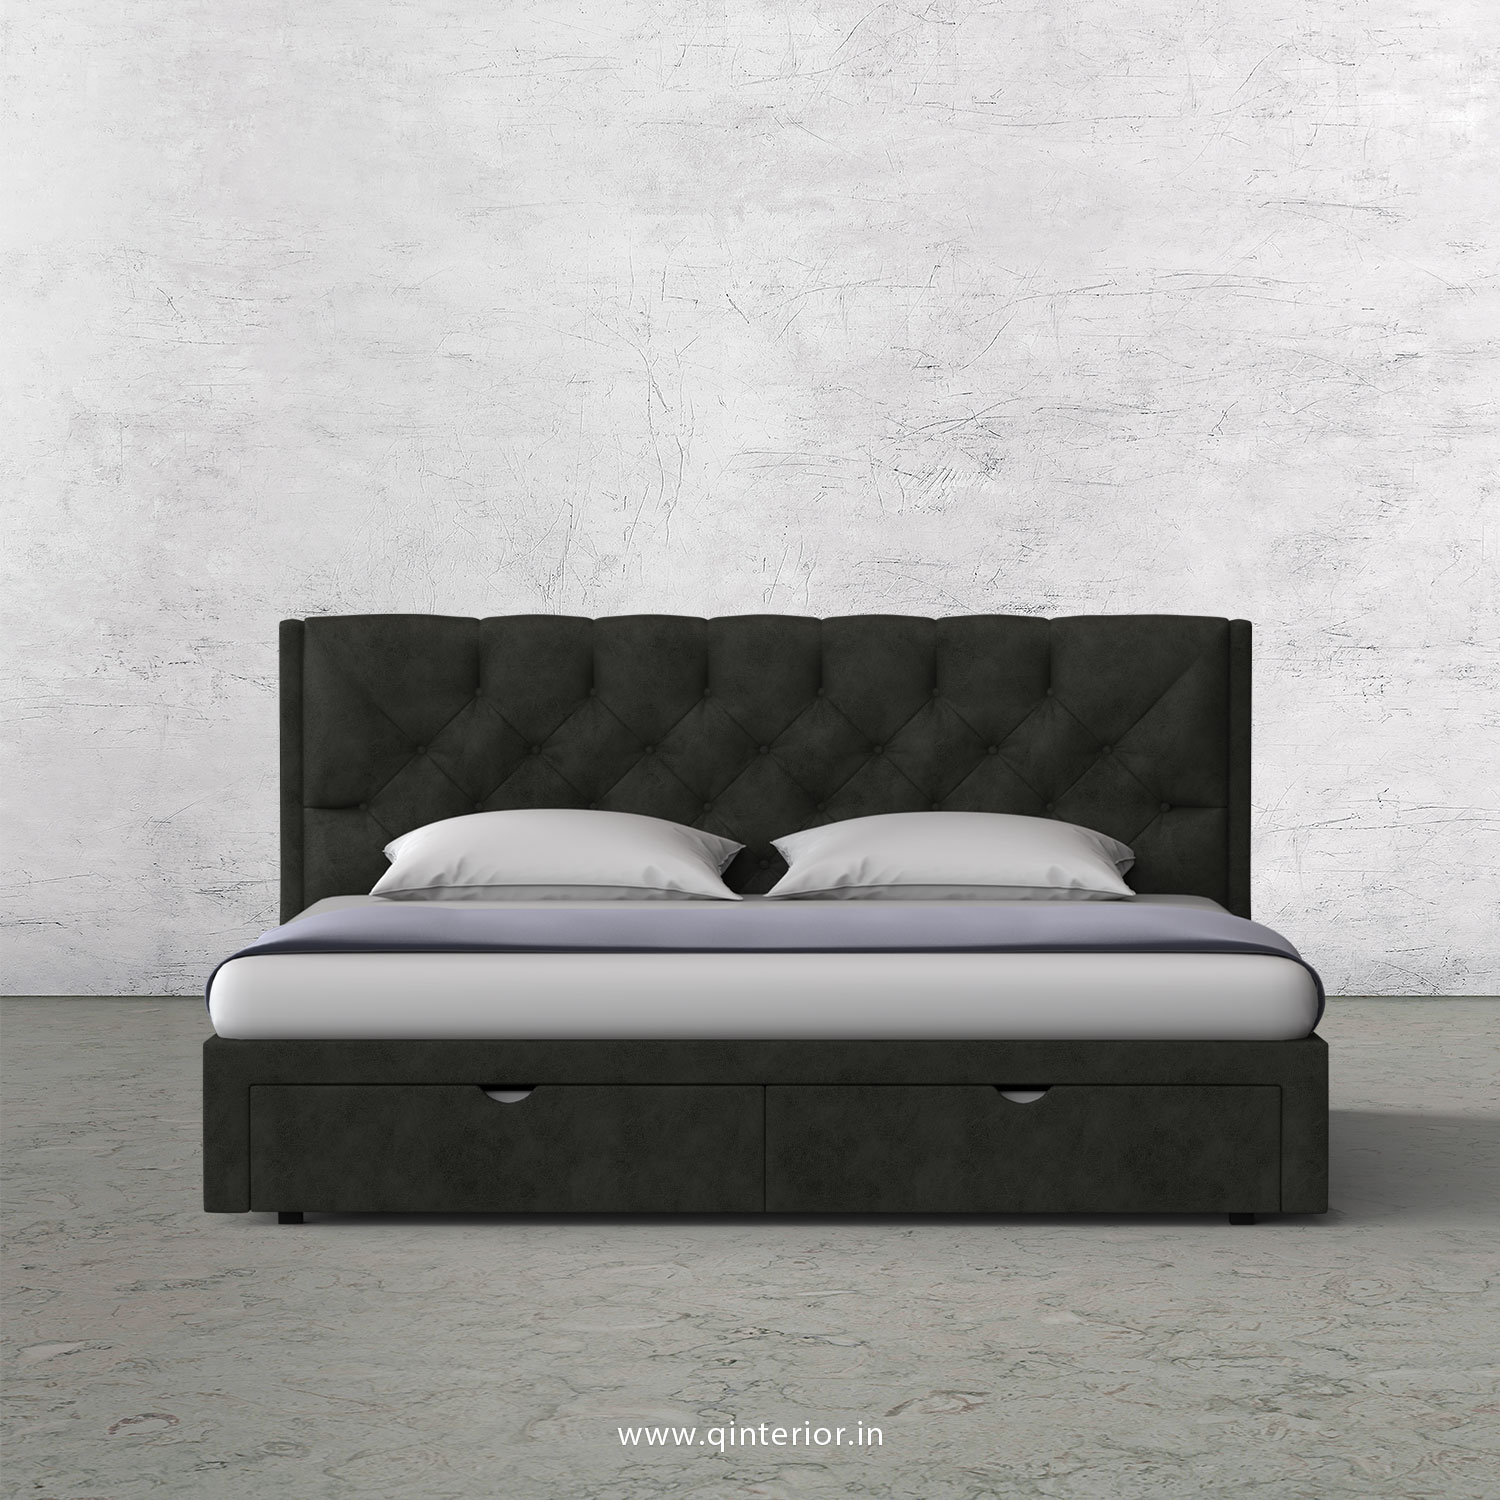 Scorpius King Size Storage Bed in Fab Leather Fabric - KBD001 FL07